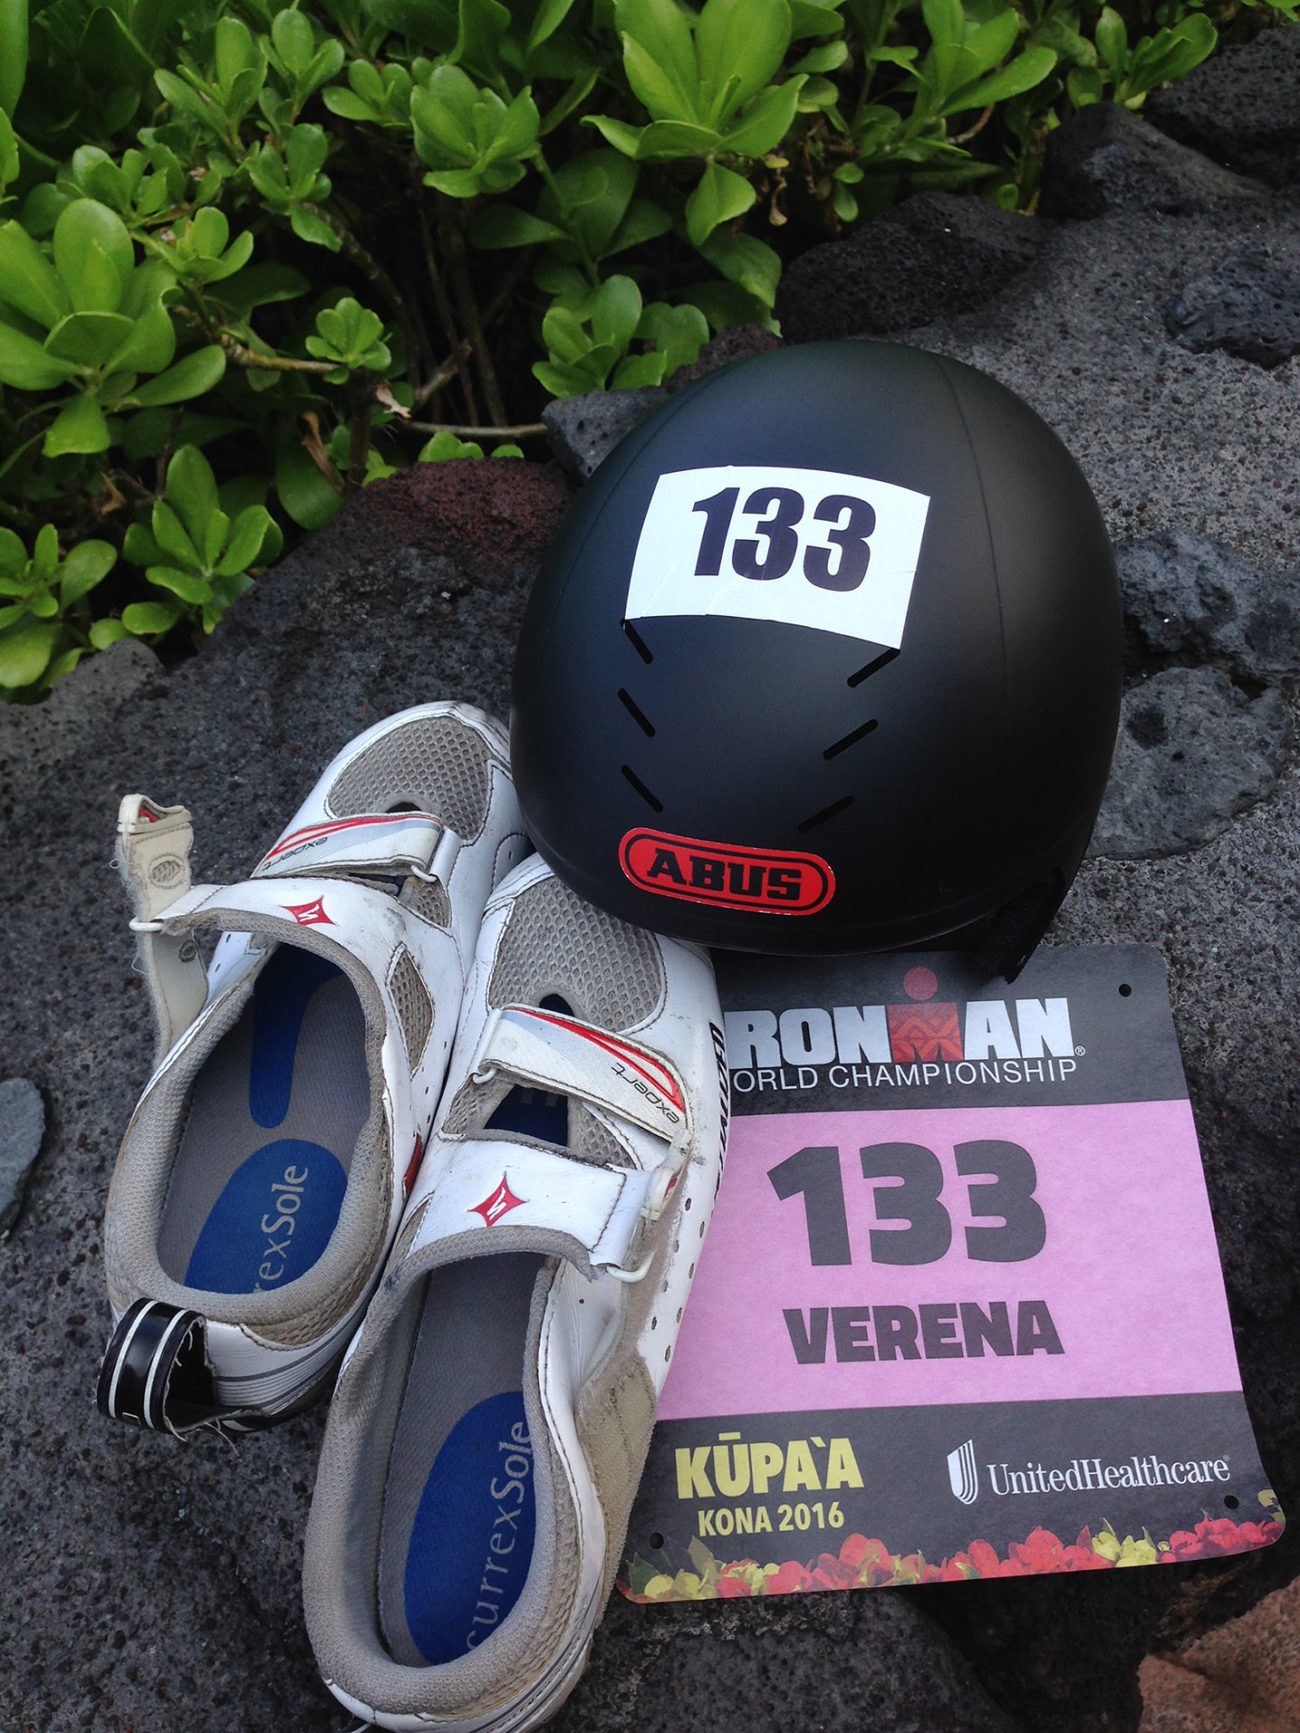 IRONMAN Hawaii 2016 – Startnummer 133